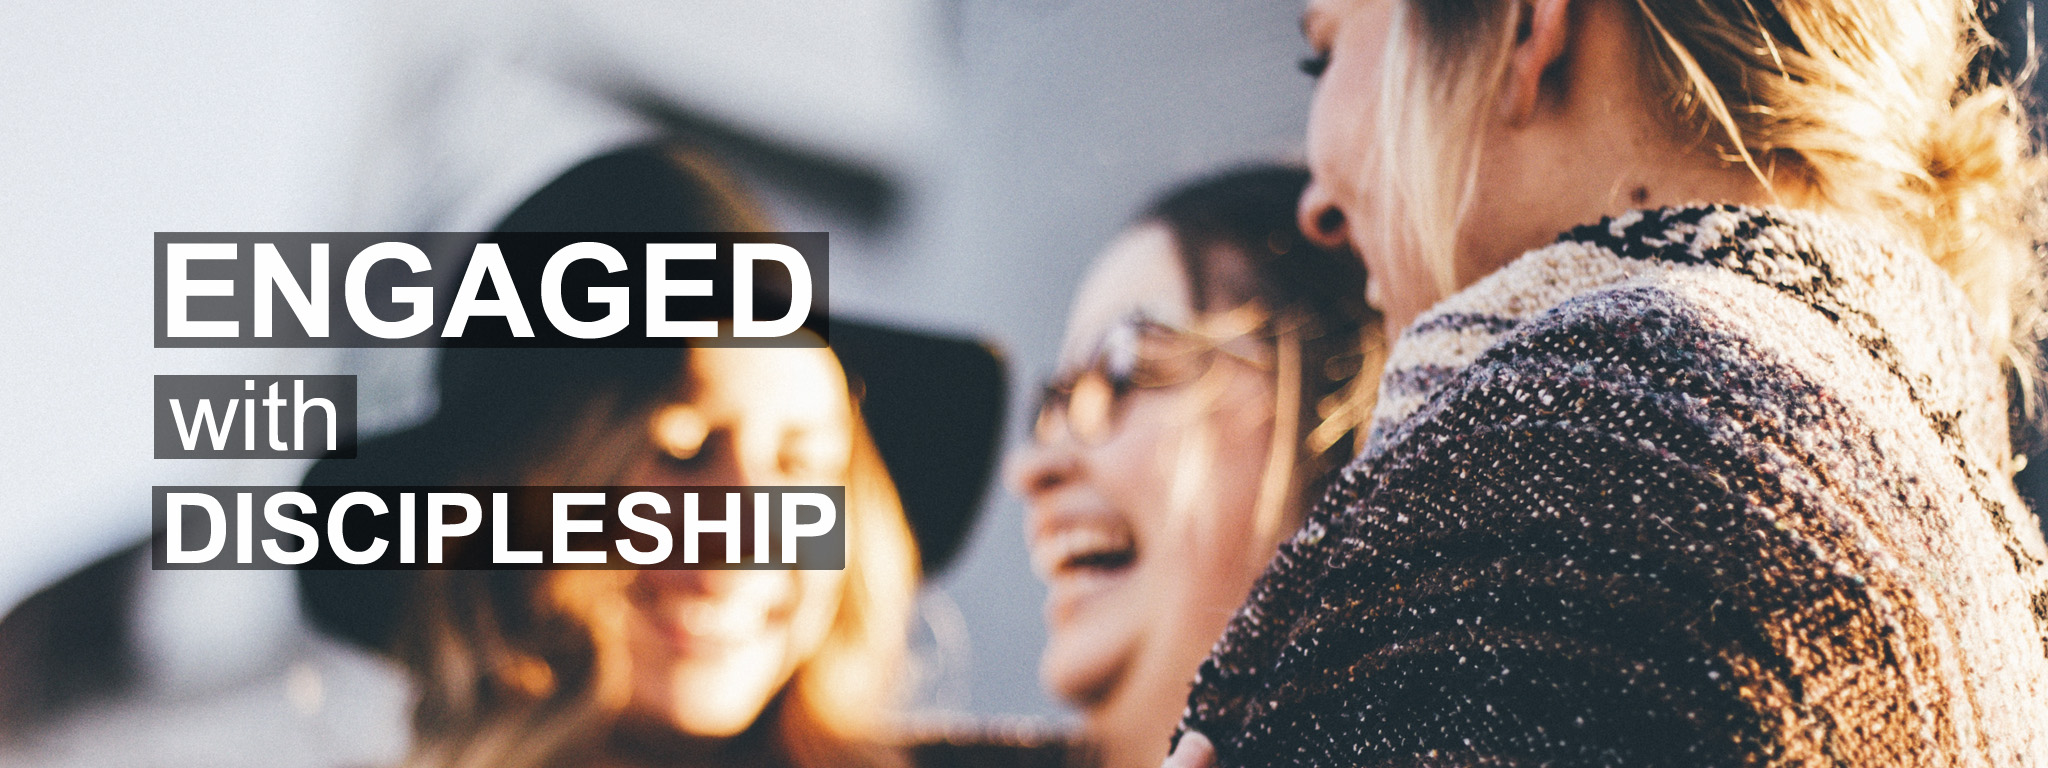 Engaged with Discipleship